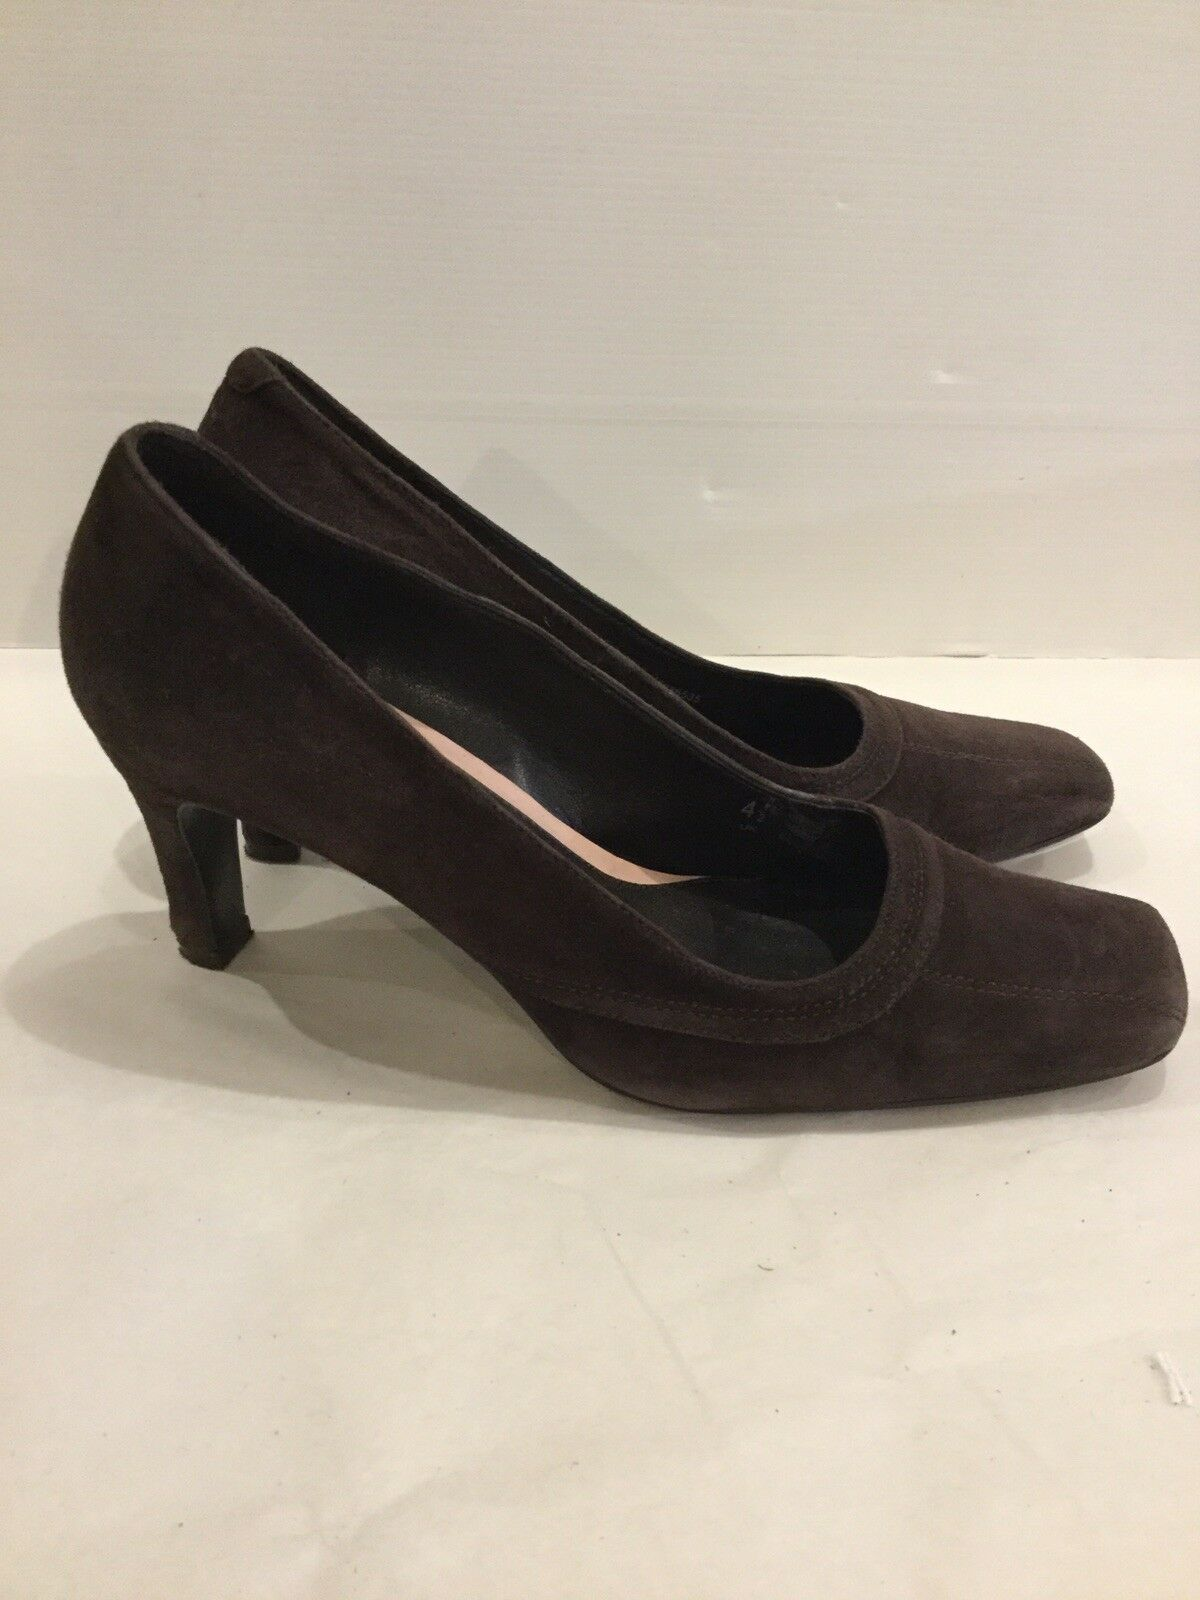 M&S Chocolate Brown Suede Court shoes. Size 4.5UK. Exc Condition